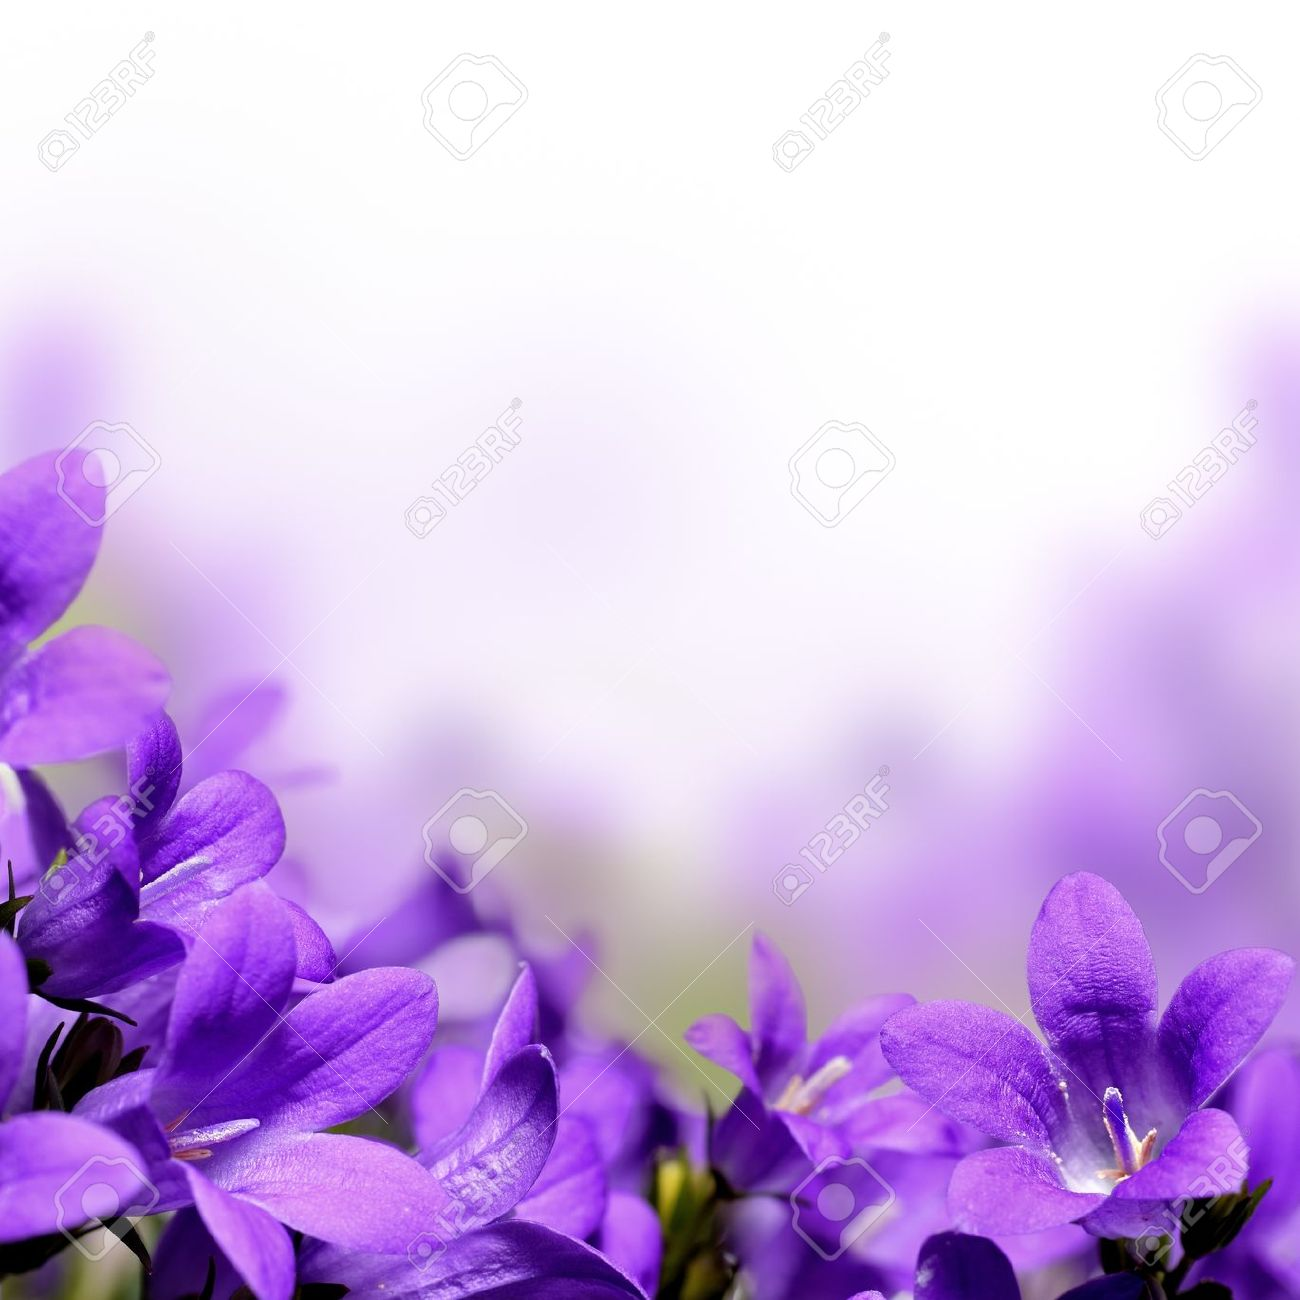 Campanula Spring Flowers Border Stock Photo Picture And Royalty